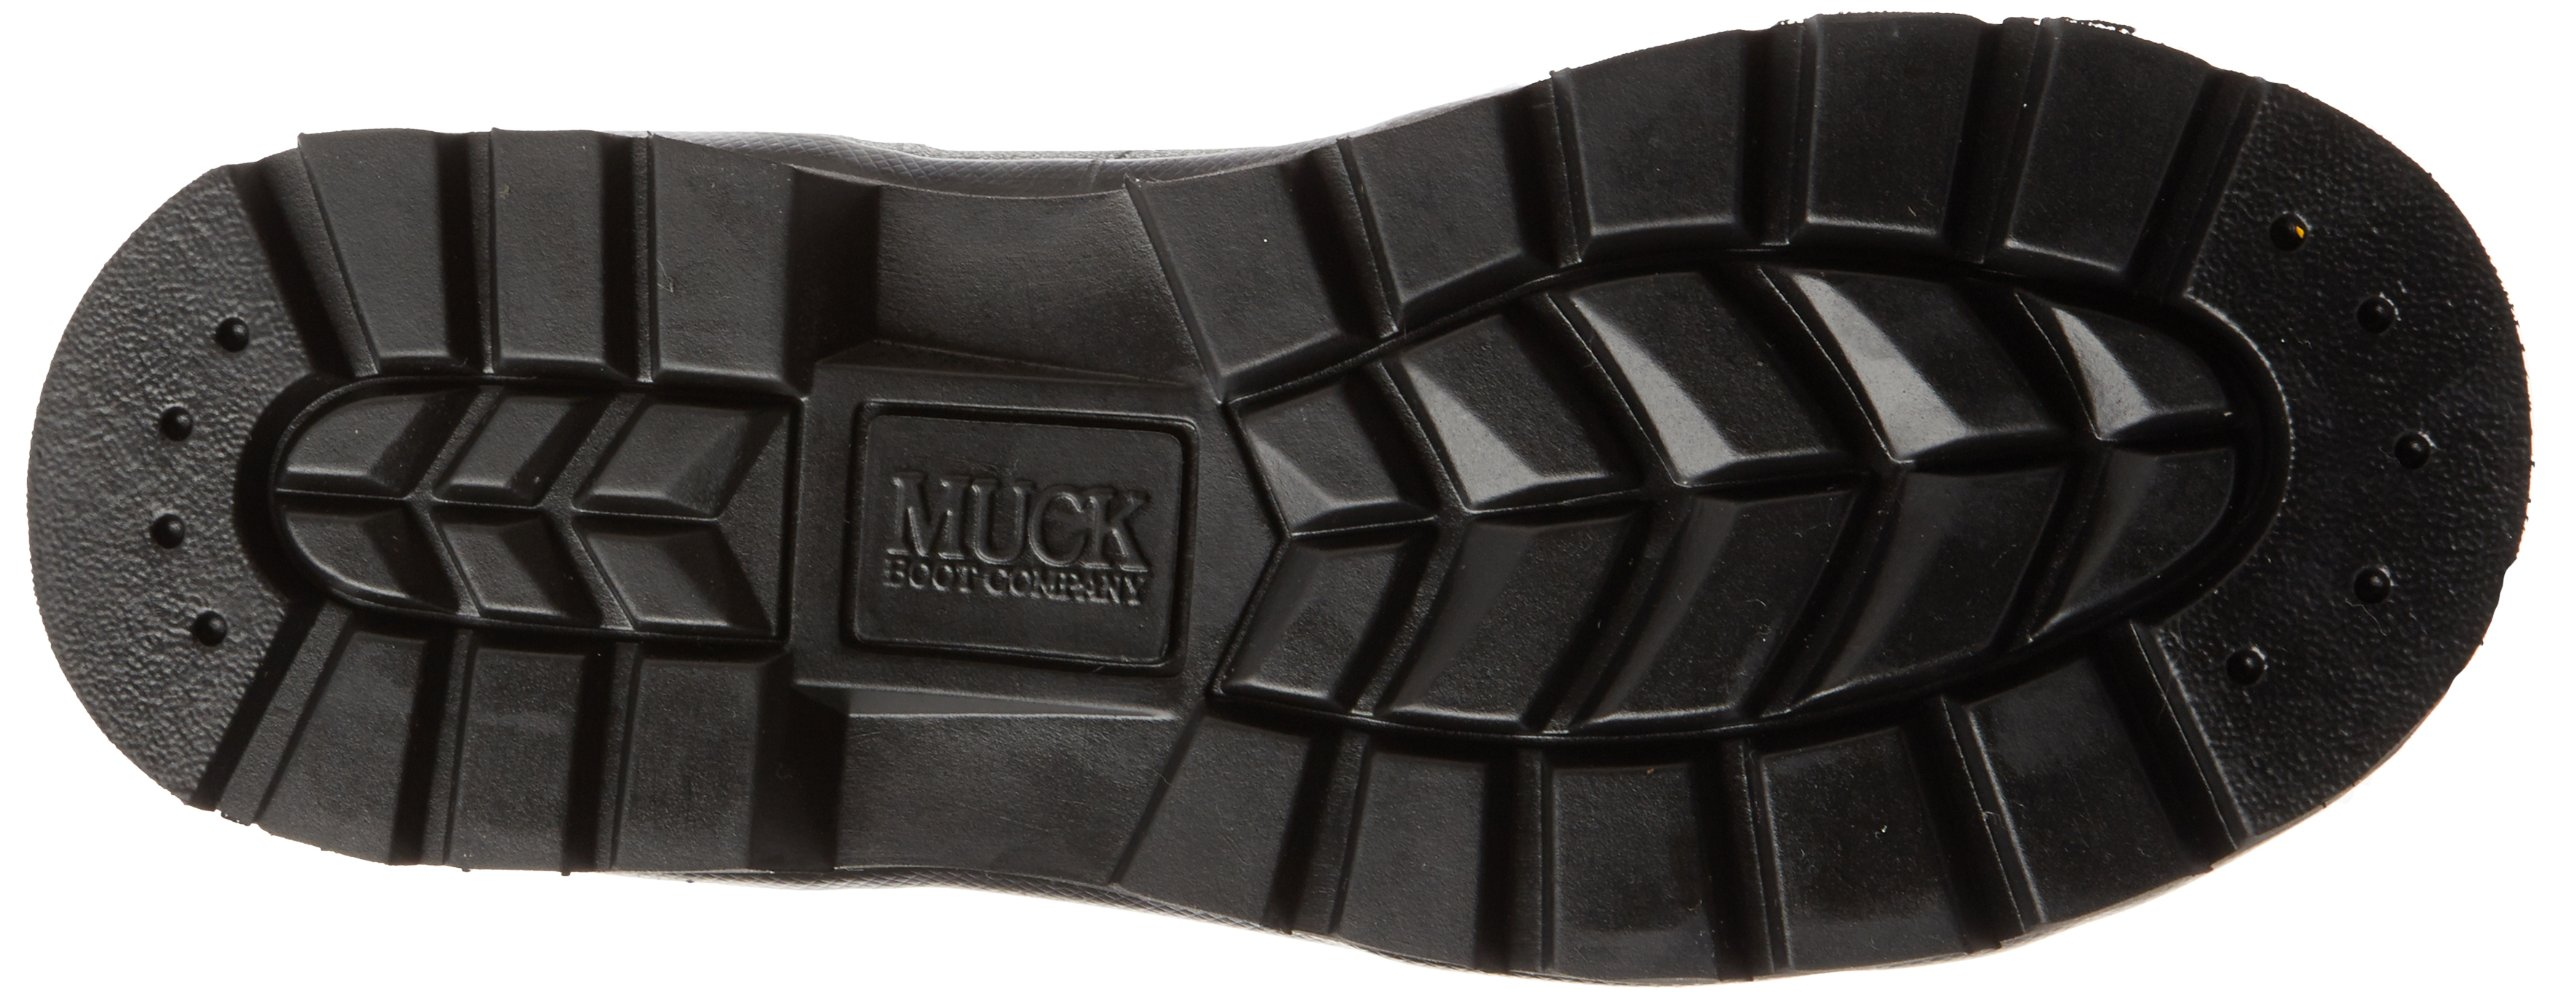 MuckBoots Men's Chore Safety Toe Metatarsal Work Boot,Black,10 M US by Muck Boot (Image #3)